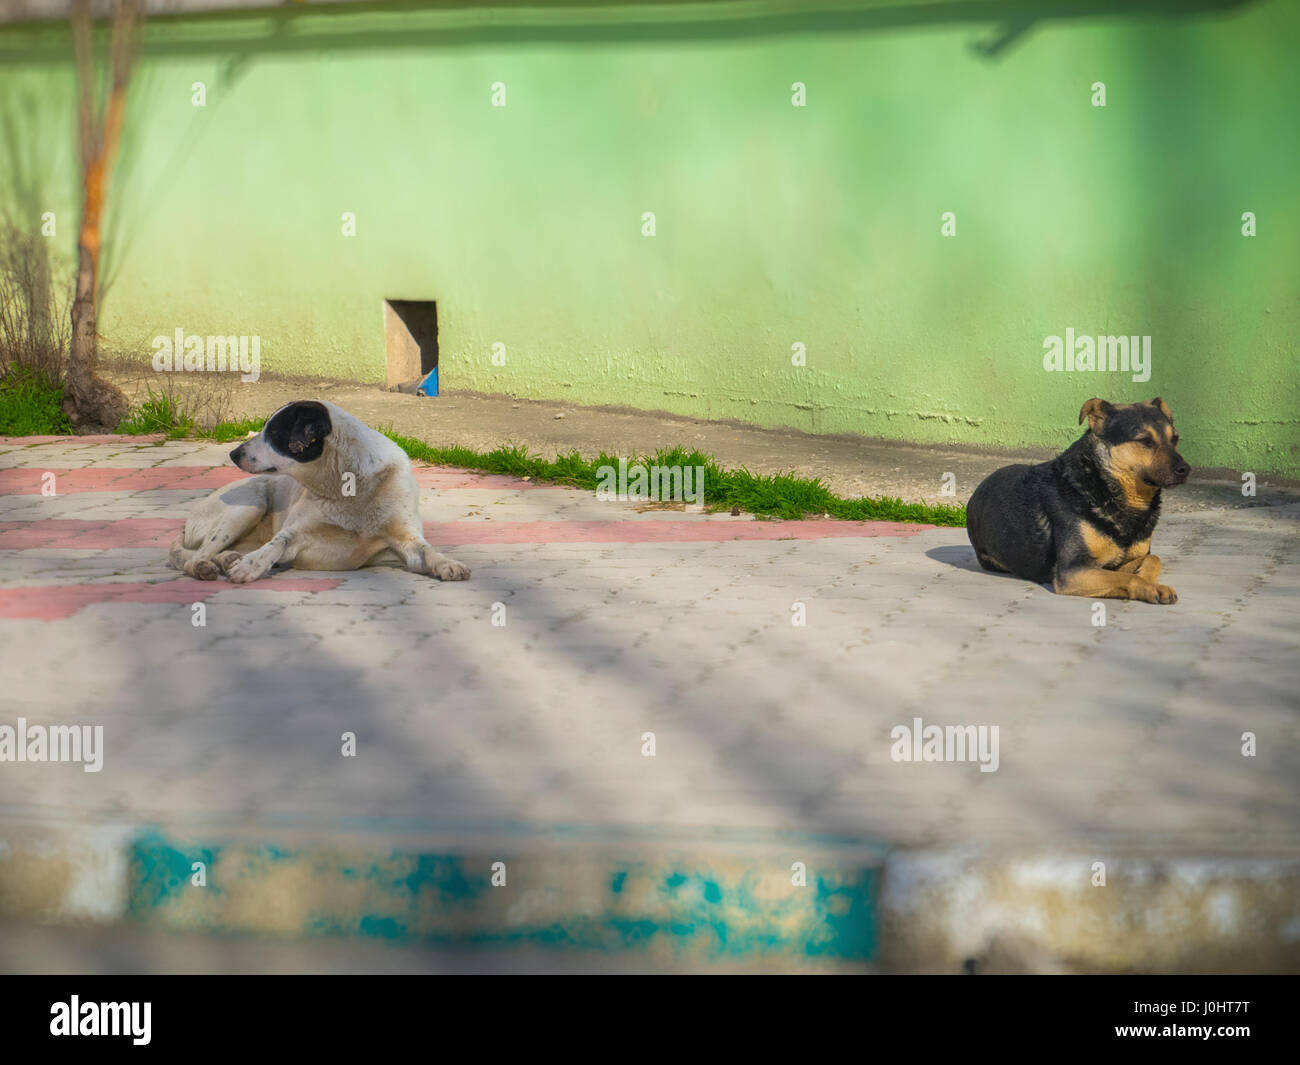 Two dogs lie on the sidewalk tile - Stock Image